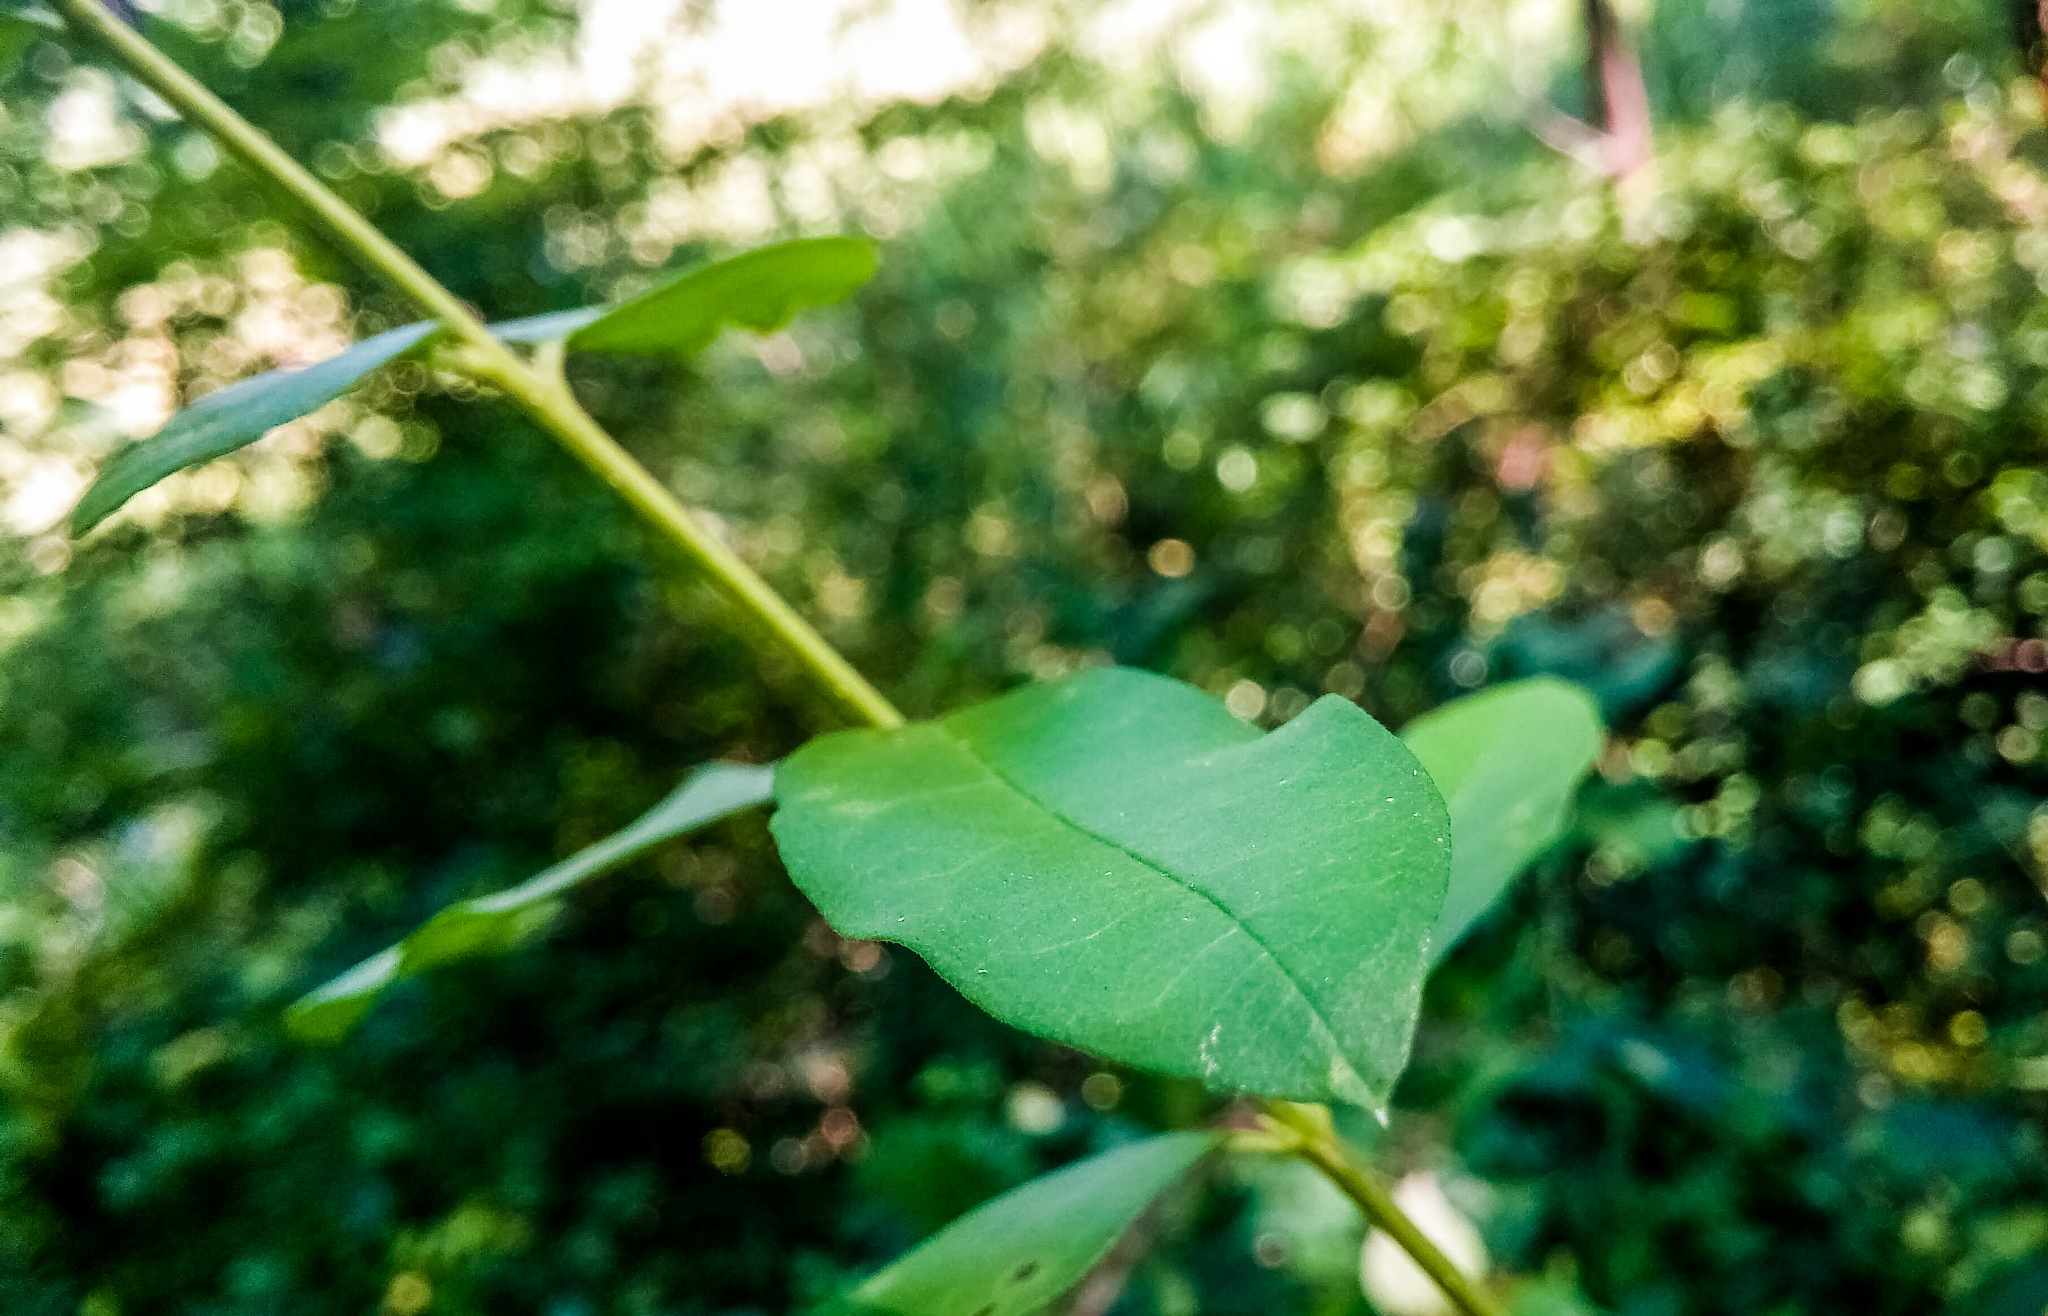 The leaves hold through the harsh cold to stay green for as long as they can. Summer is not giving u by Ashley Senior